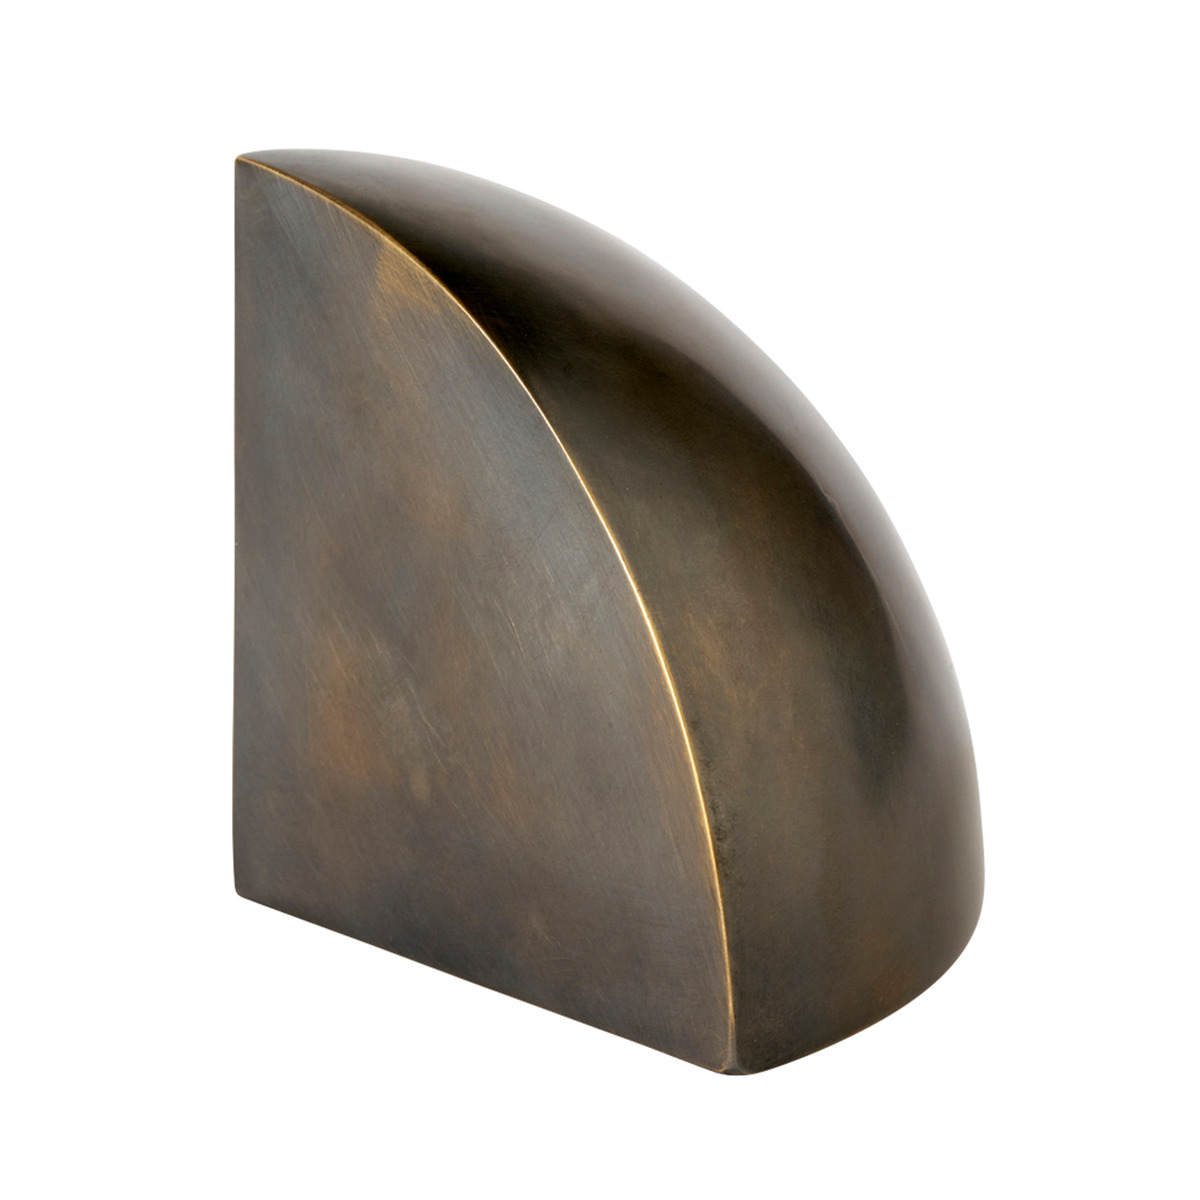 &Tradition Collect SC42 Object, bronzed brass from &Tradition